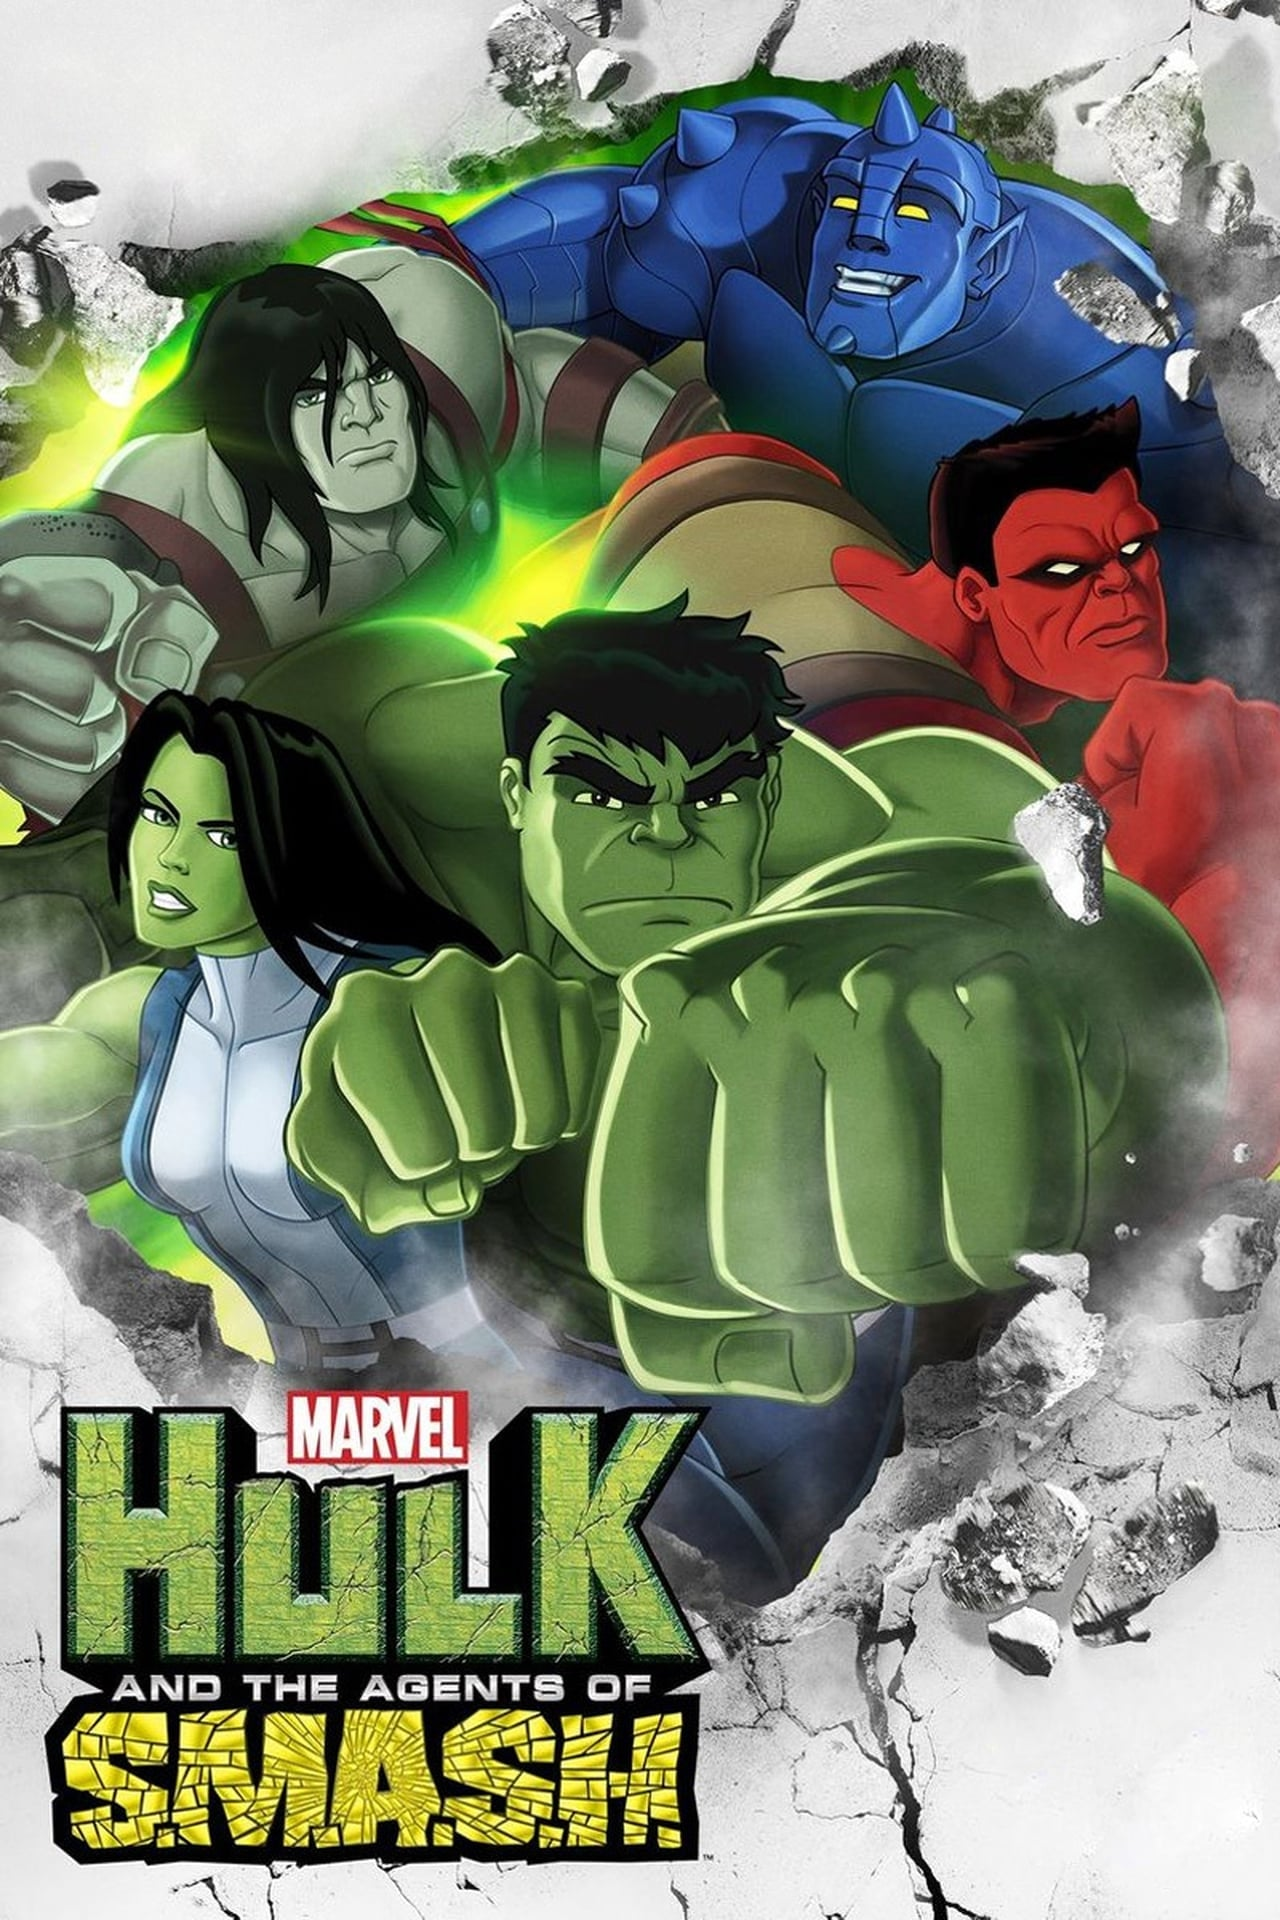 Marvel's Hulk and the Agents of S.M.A.S.H saison 2 episode 13 en streaming